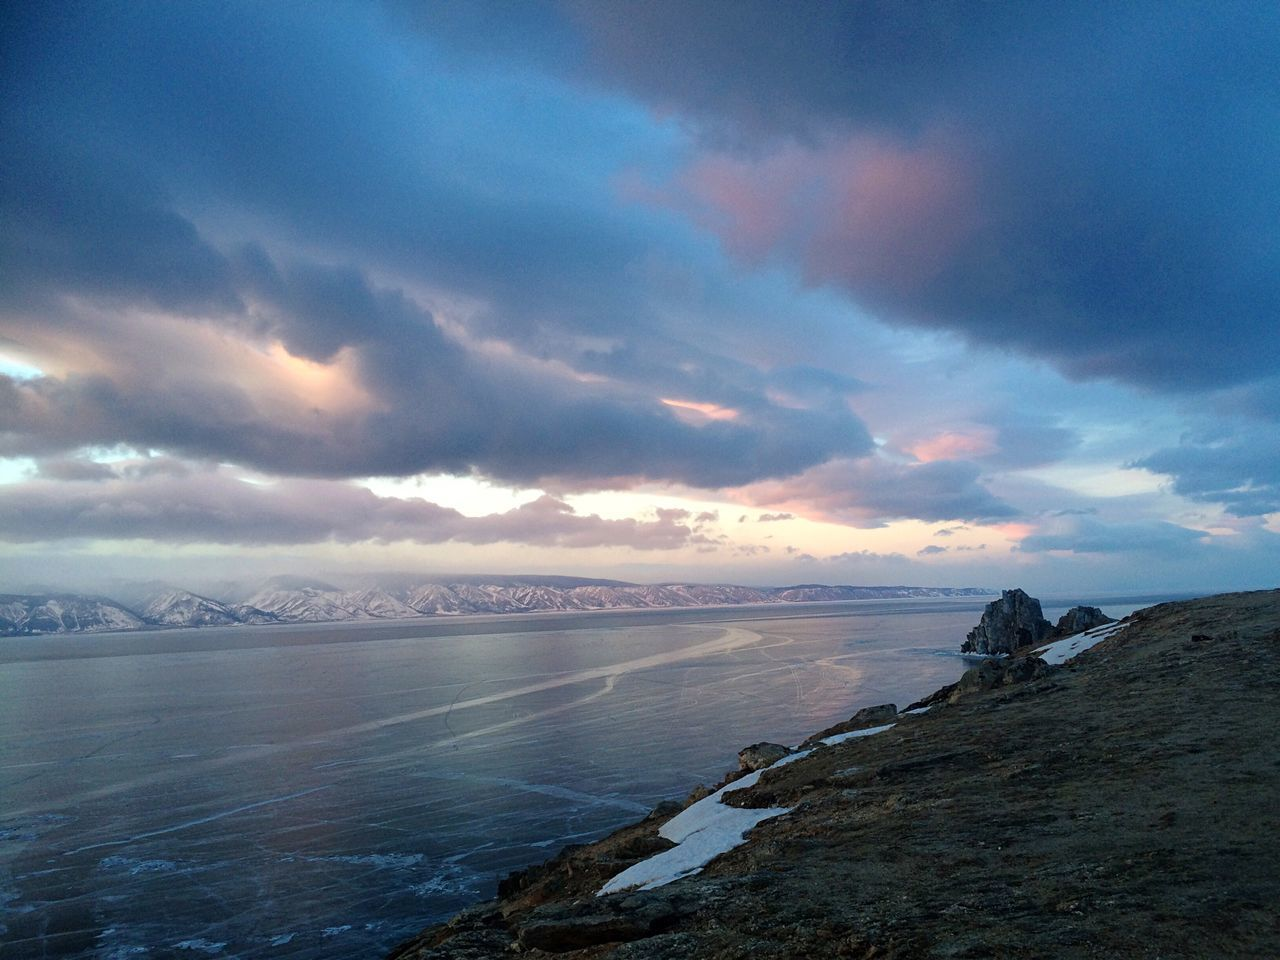 Sky Sky And Clouds Russia Olkhon Island Enjoying Life Taking Photos Relaxing Traveling Sunset Lake Baikal Beautiful Nature Soft Colors  February Winter Lake View Frozen Lake живи_на_байкале Live_on_baikal